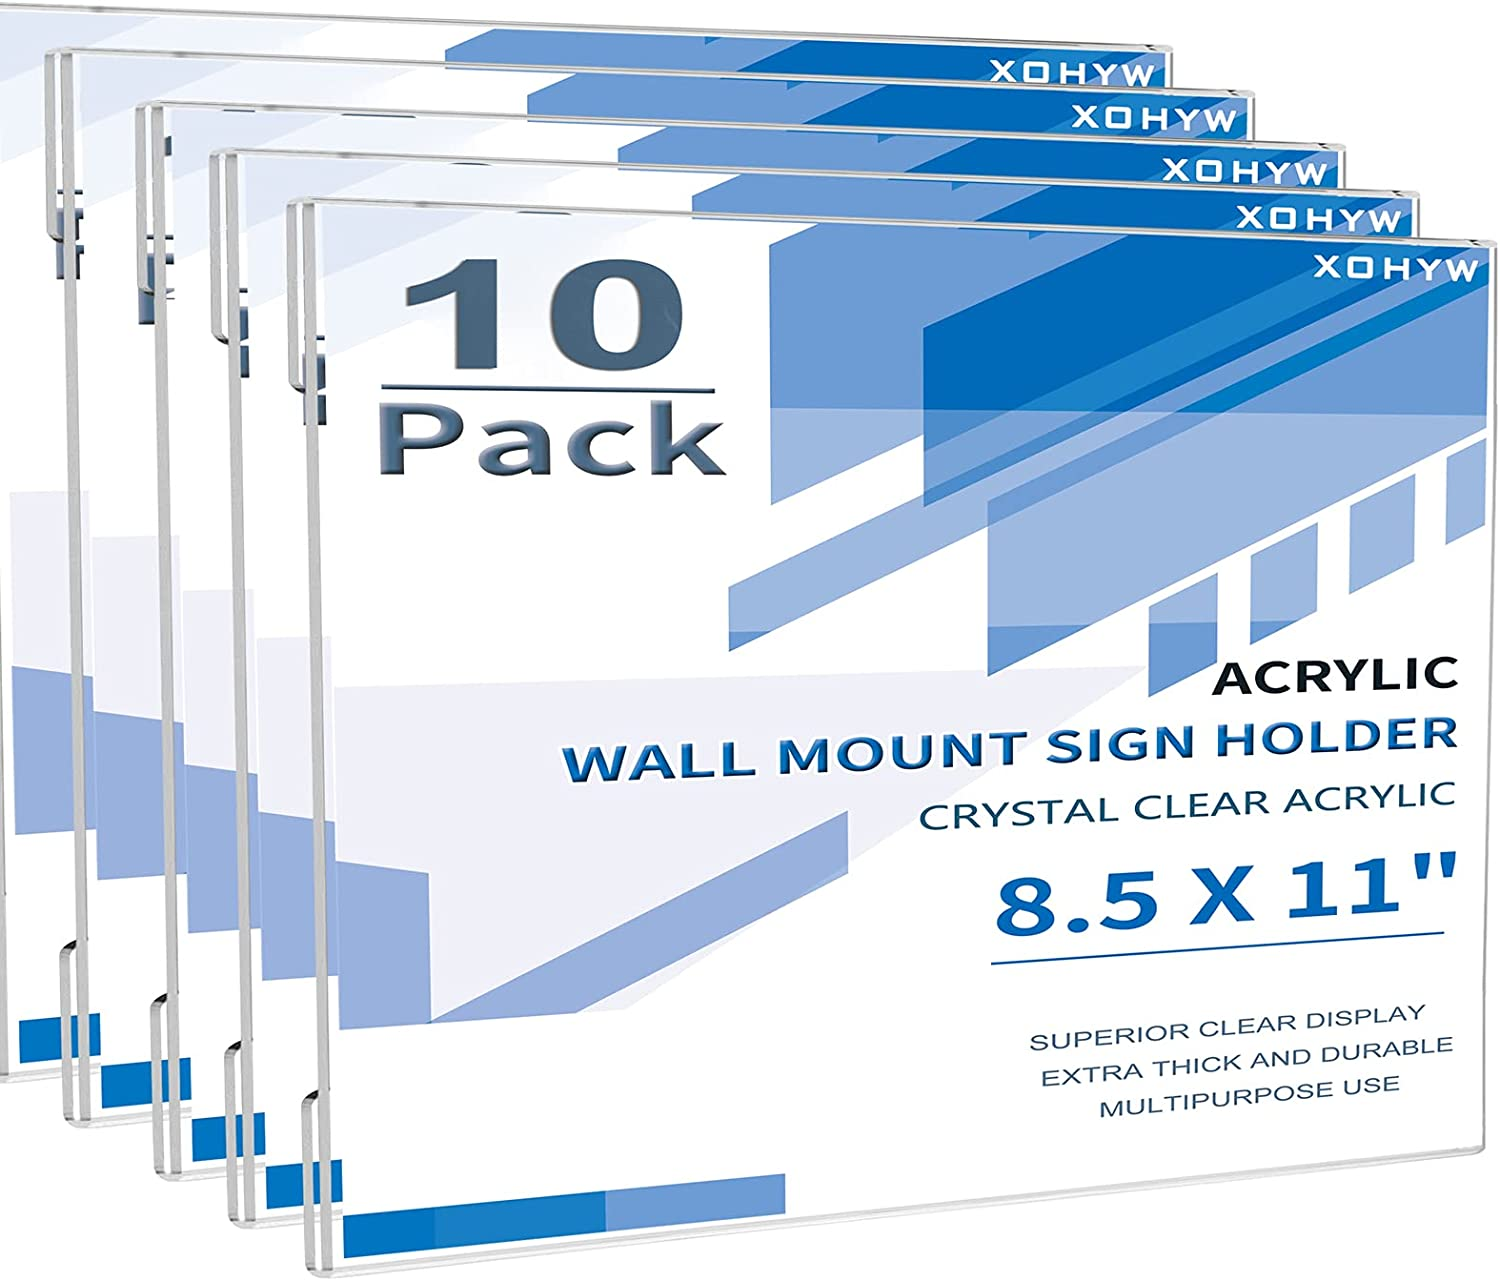 XOHYW 10 Pack Clear Super sale Limited time cheap sale Acrylic Wall Mount Holder 8.5 11 Sign x inch